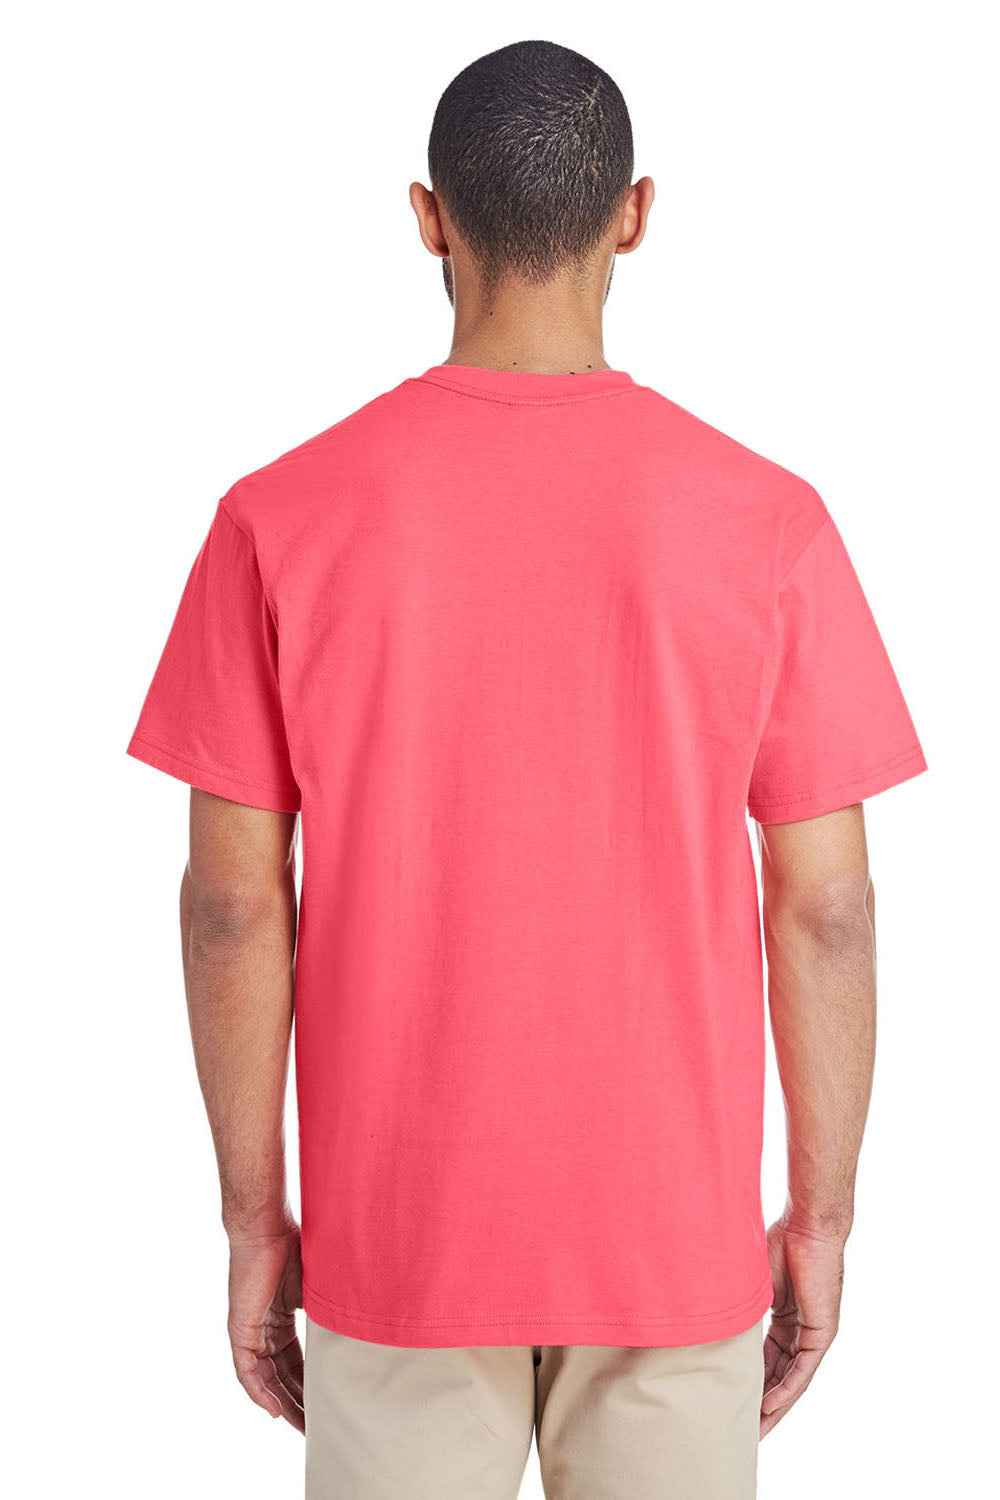 Gildan H300 Mens Hammer Short Sleeve Crewneck T-Shirt w/ Pocket Coral Silk Pink Back